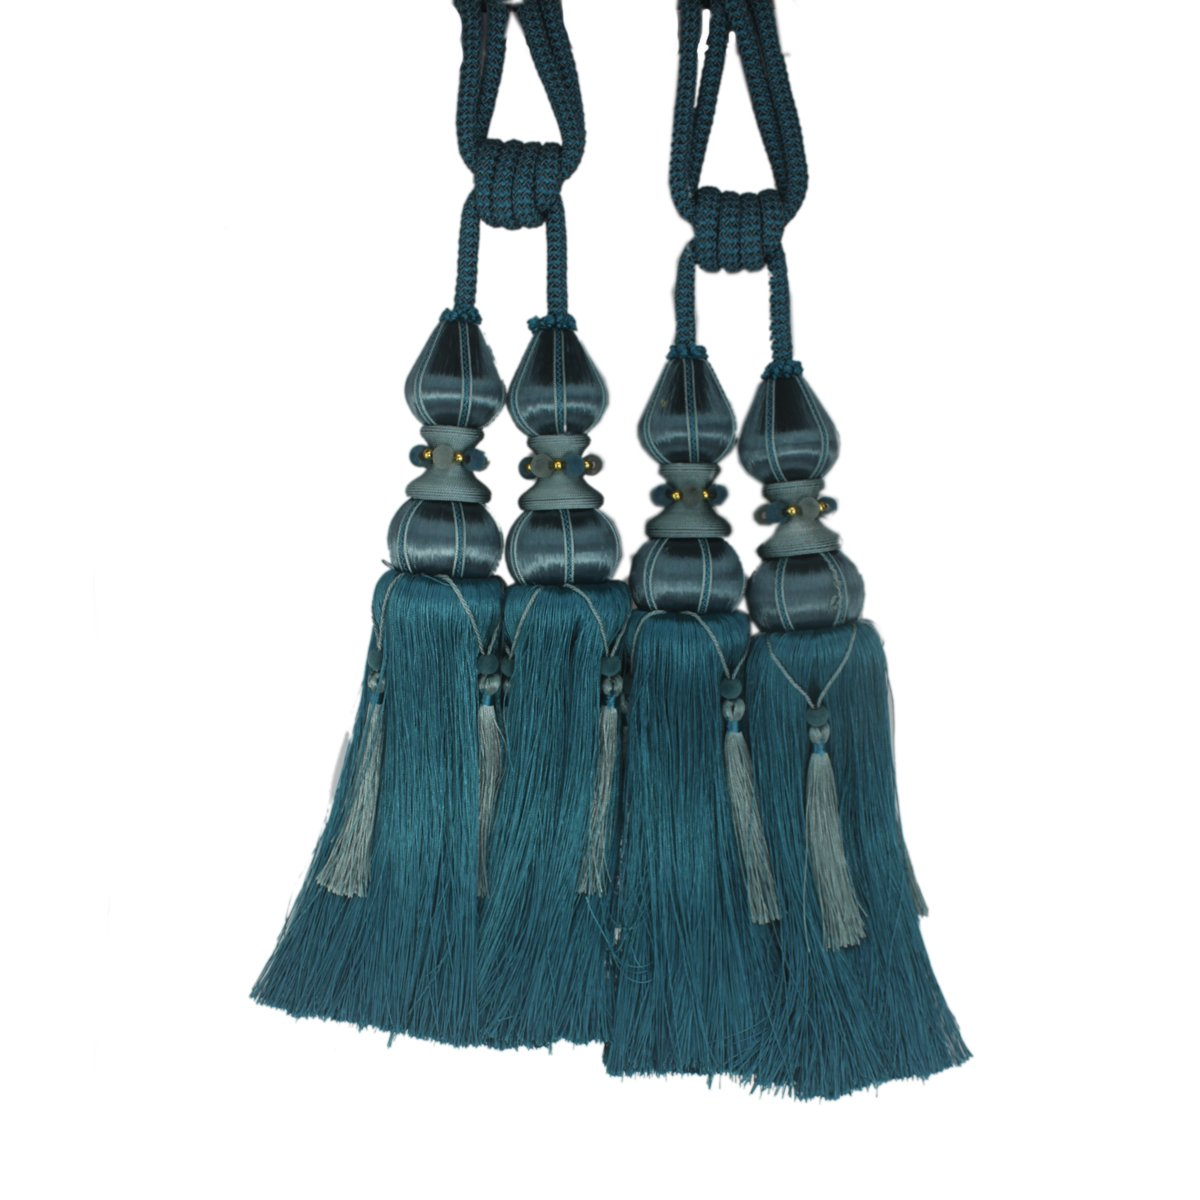 Fongbay One x 4pcs Tassel Curtain Crystal Curtain Hanging Ball(Single Ball Style) for Curtains Tiebacks Rope,Curtains Buckle Holdbacks Tiebacks Tassel Window Cotton Rope Tie Ball